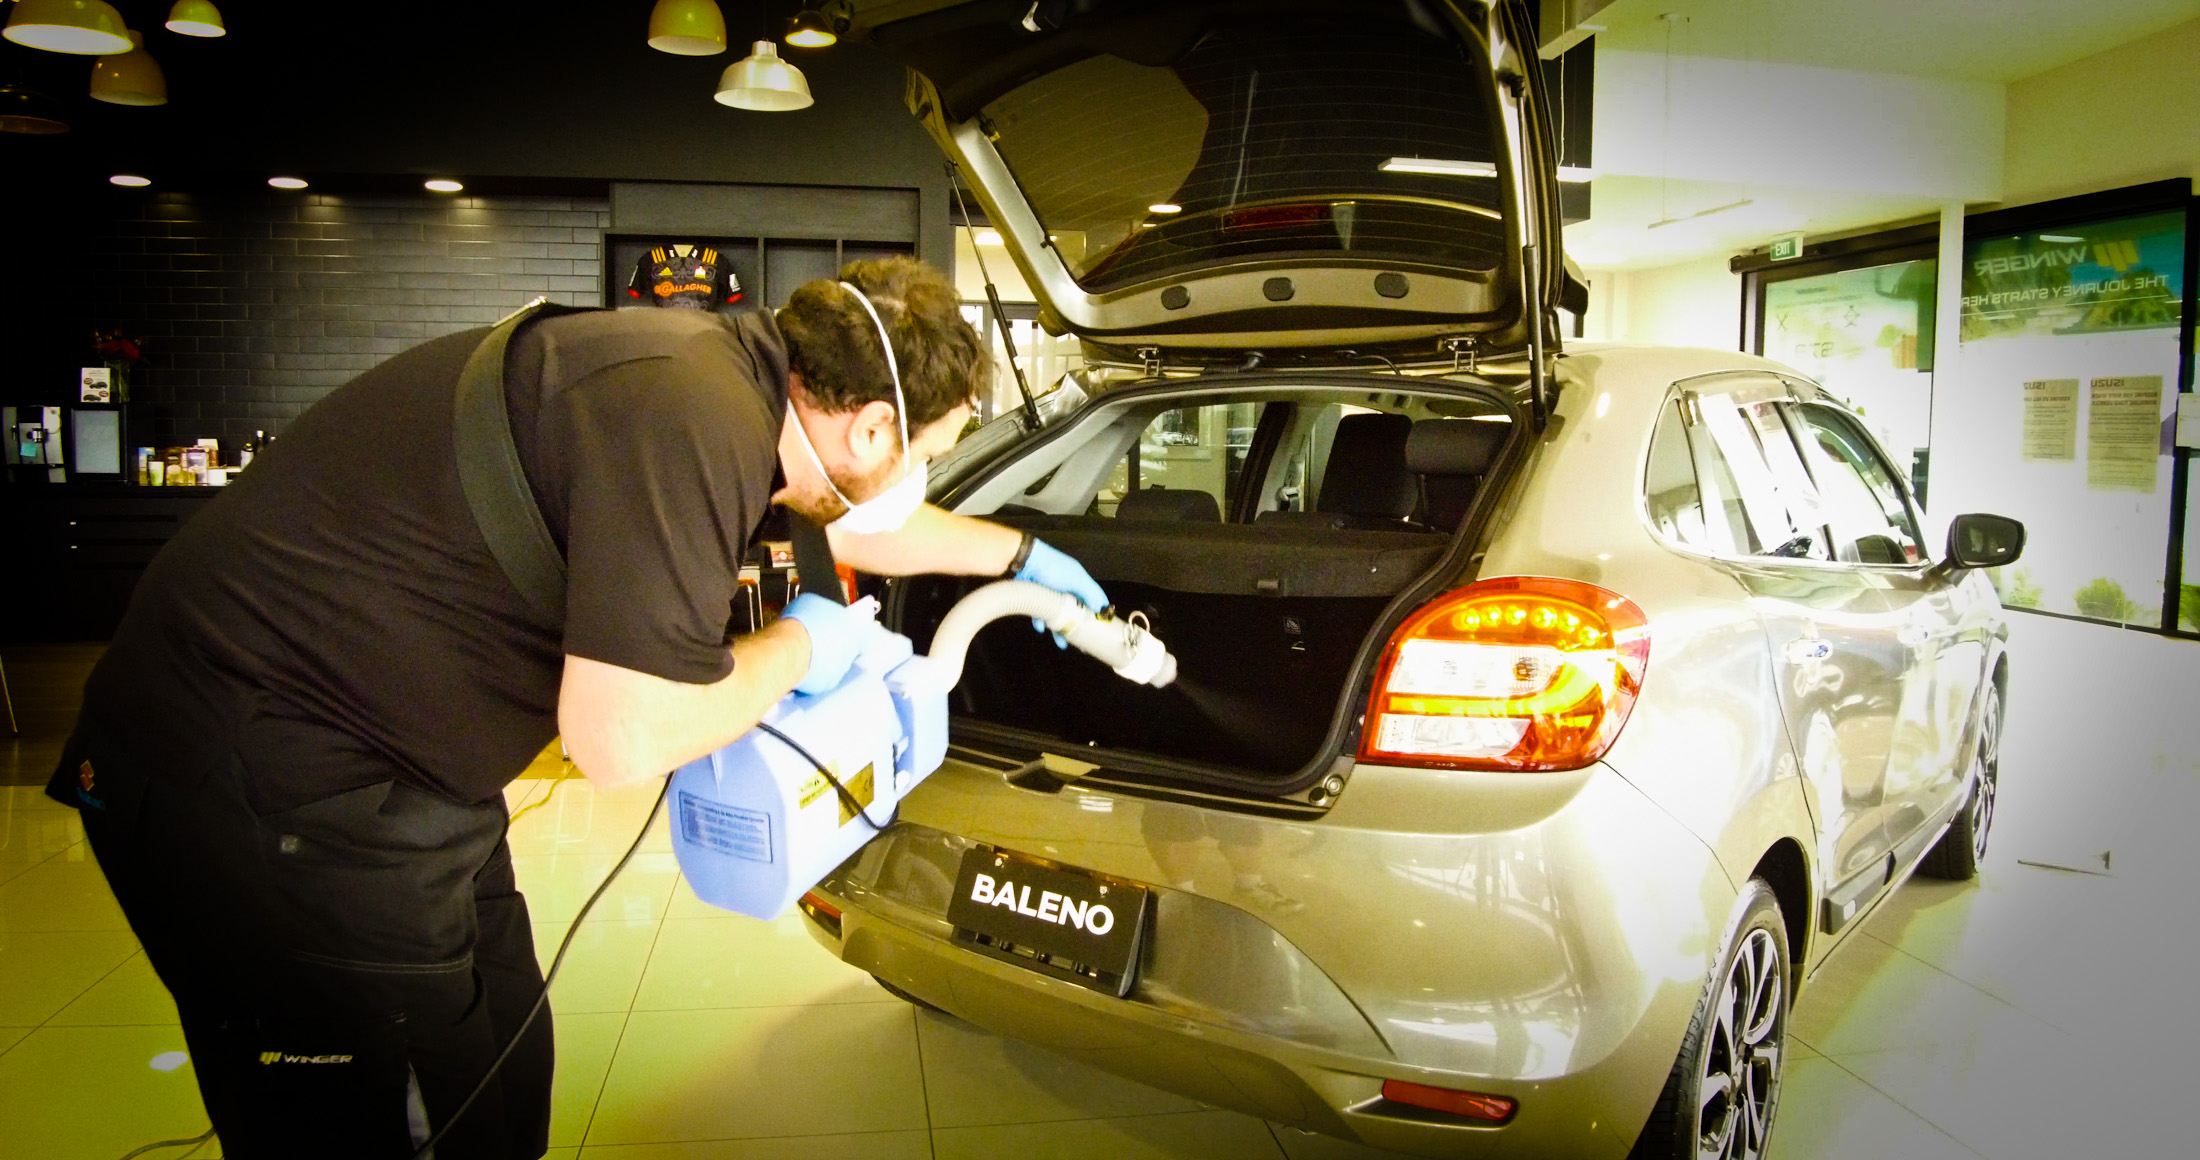 Applying product to rear boot hatch area and sanitising